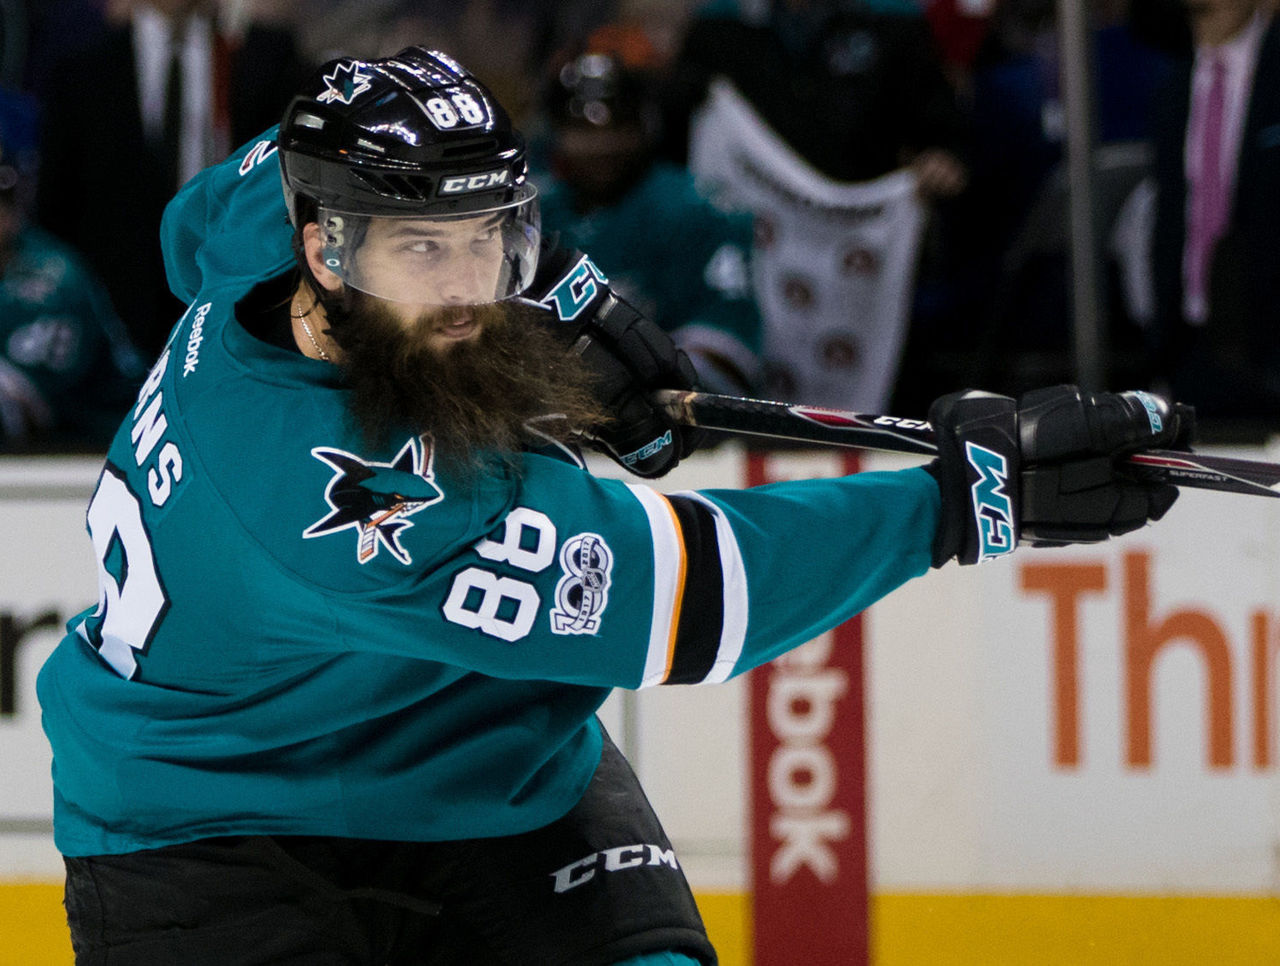 Cropped 2017 03 29t034415z 24186192 nocid rtrmadp 3 nhl new york rangers at san jose sharks